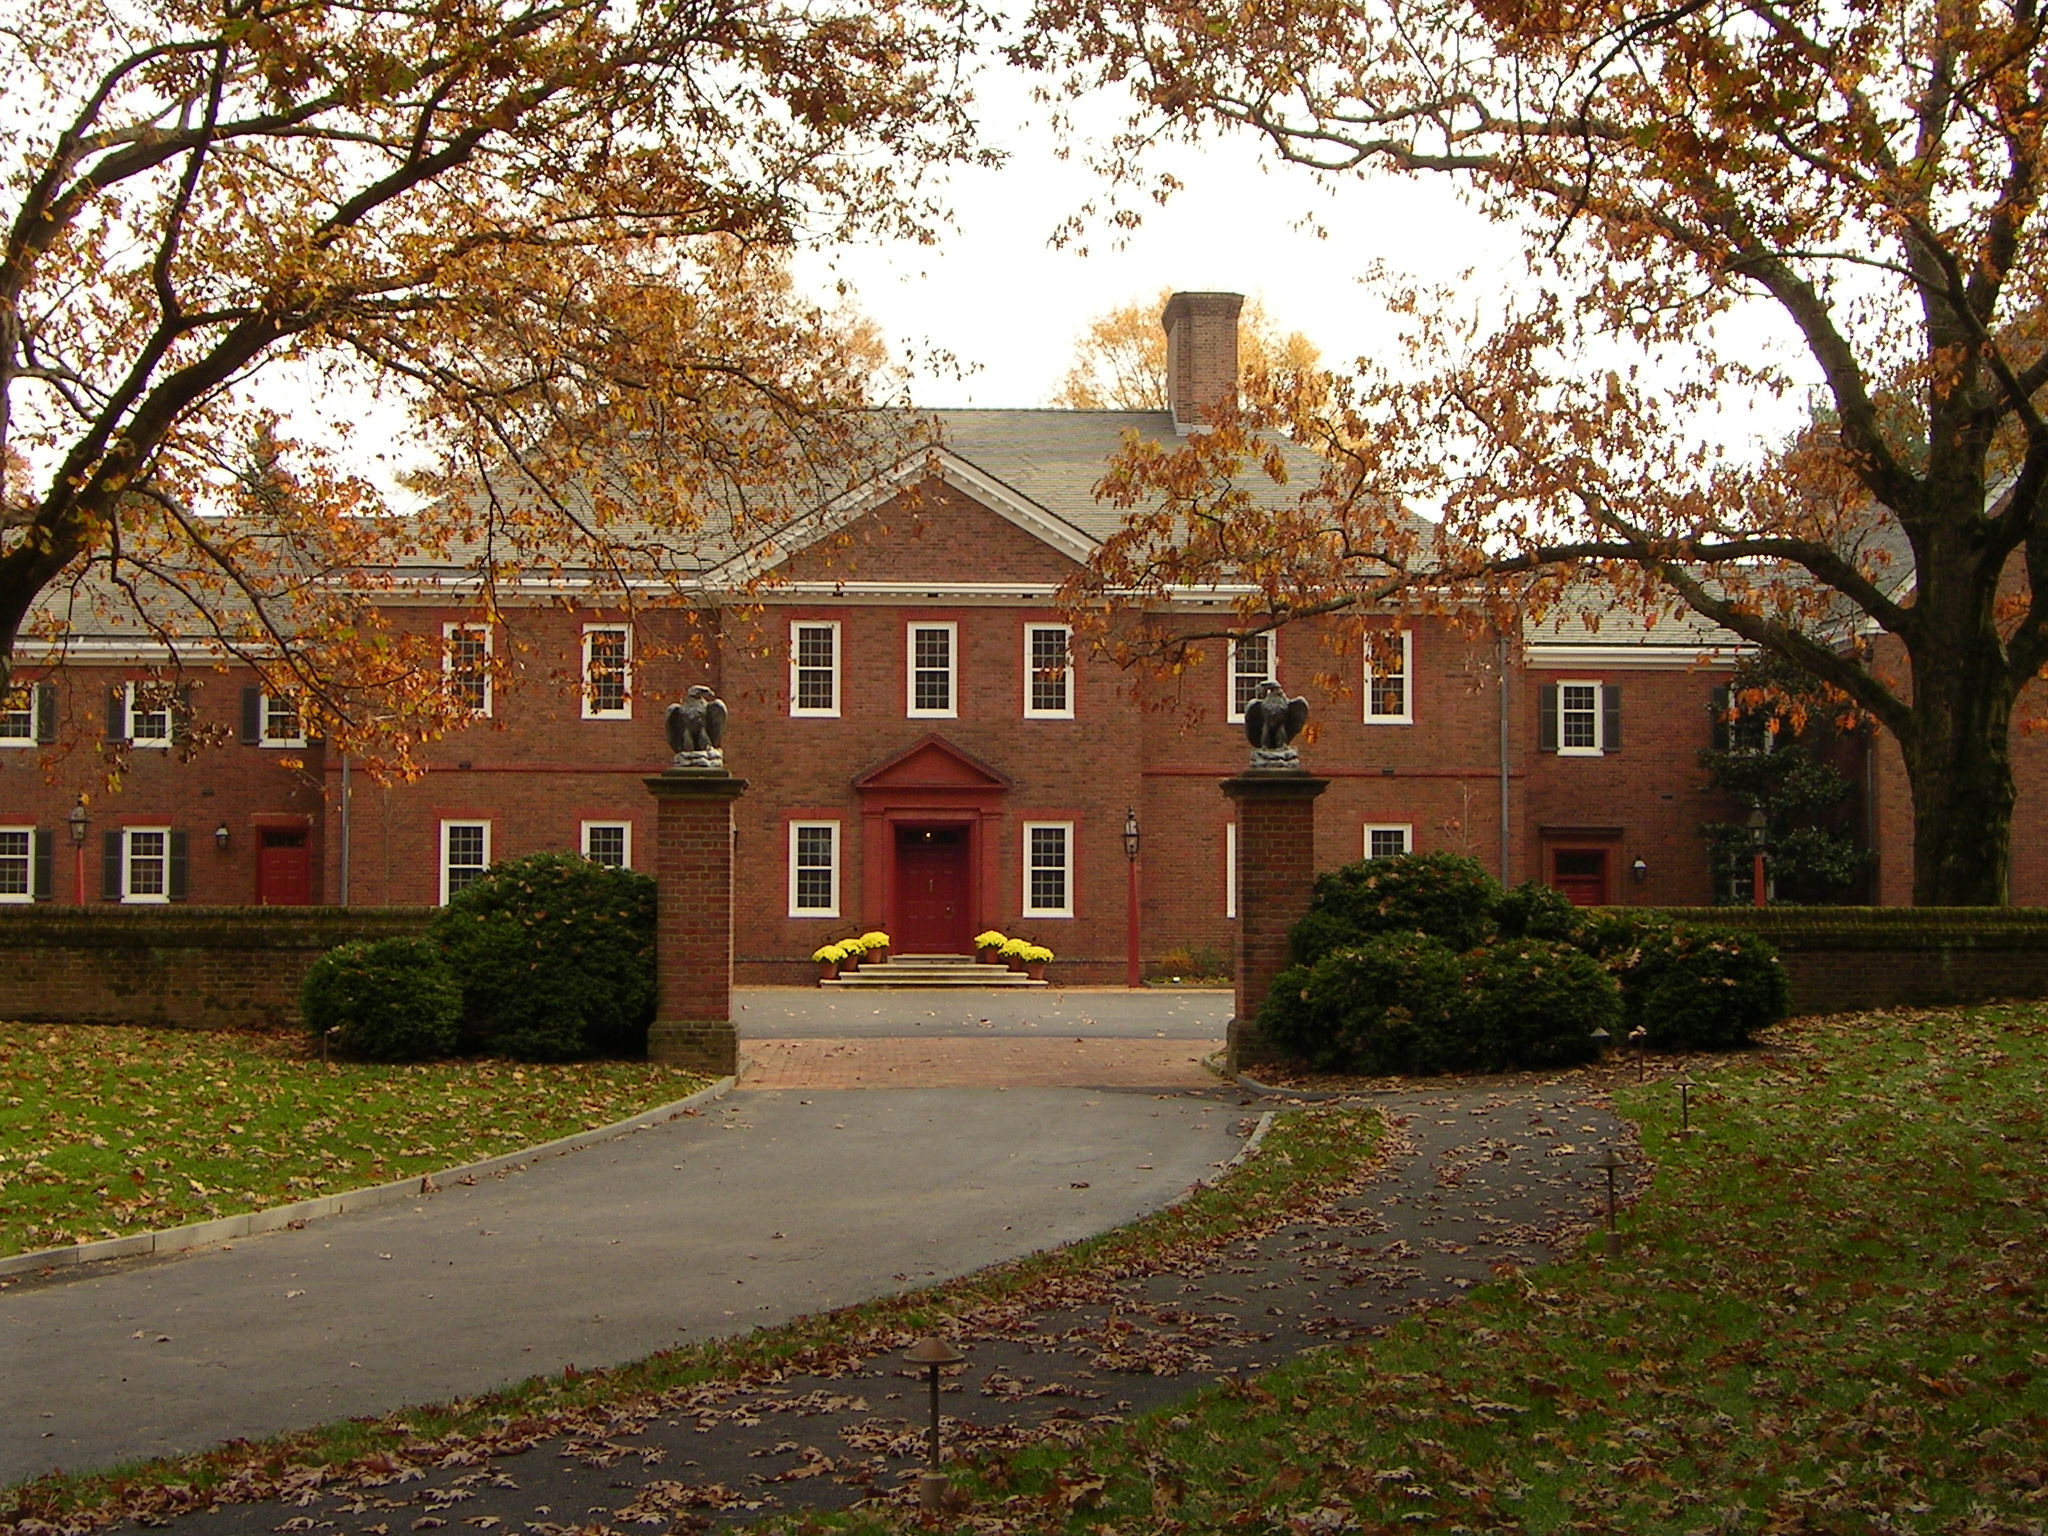 View of the Main House and Forecourt framed by two trees during autumn with leaf-covered paved pathways, steps leading up to the red Guest Entrance door, and red accessible entrance off to the left